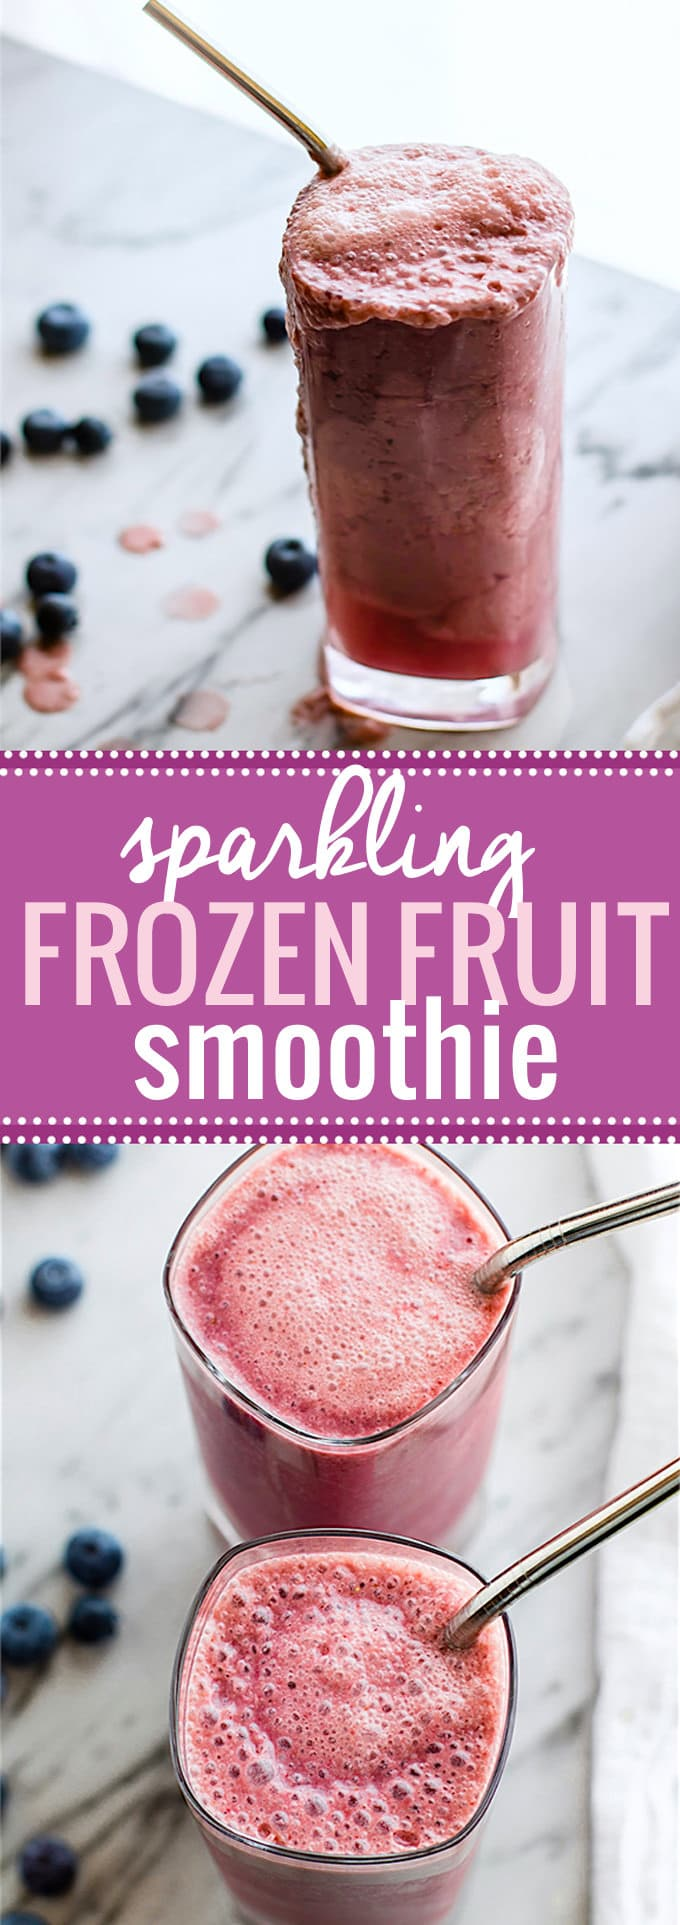 5 ingredient Sparkling Frozen Fruit Smoothie! This frozen fruit smoothie is the perfect Healthy summer refresher. No ice needed. Paleo and Vegan friendly @cottercrunch